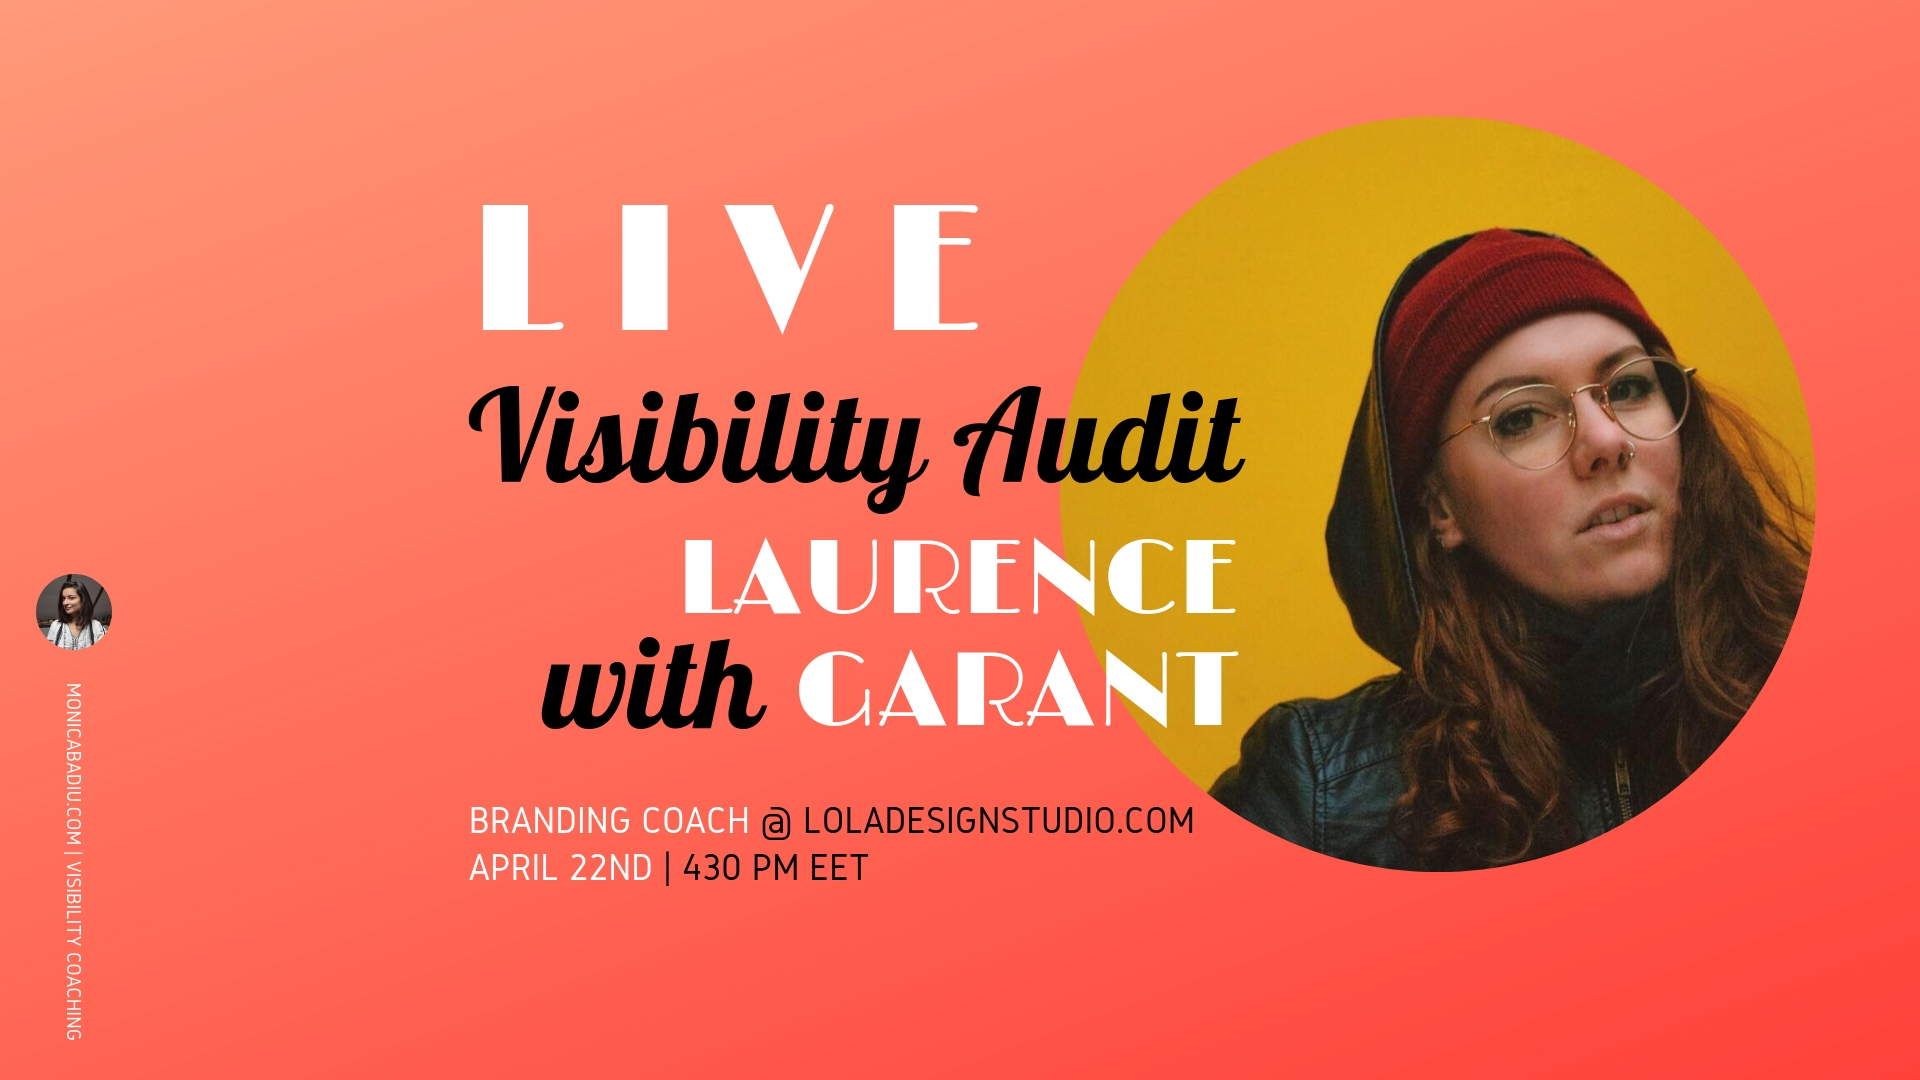 Watch Laurence Garant perform a live audit of my website and social channels.